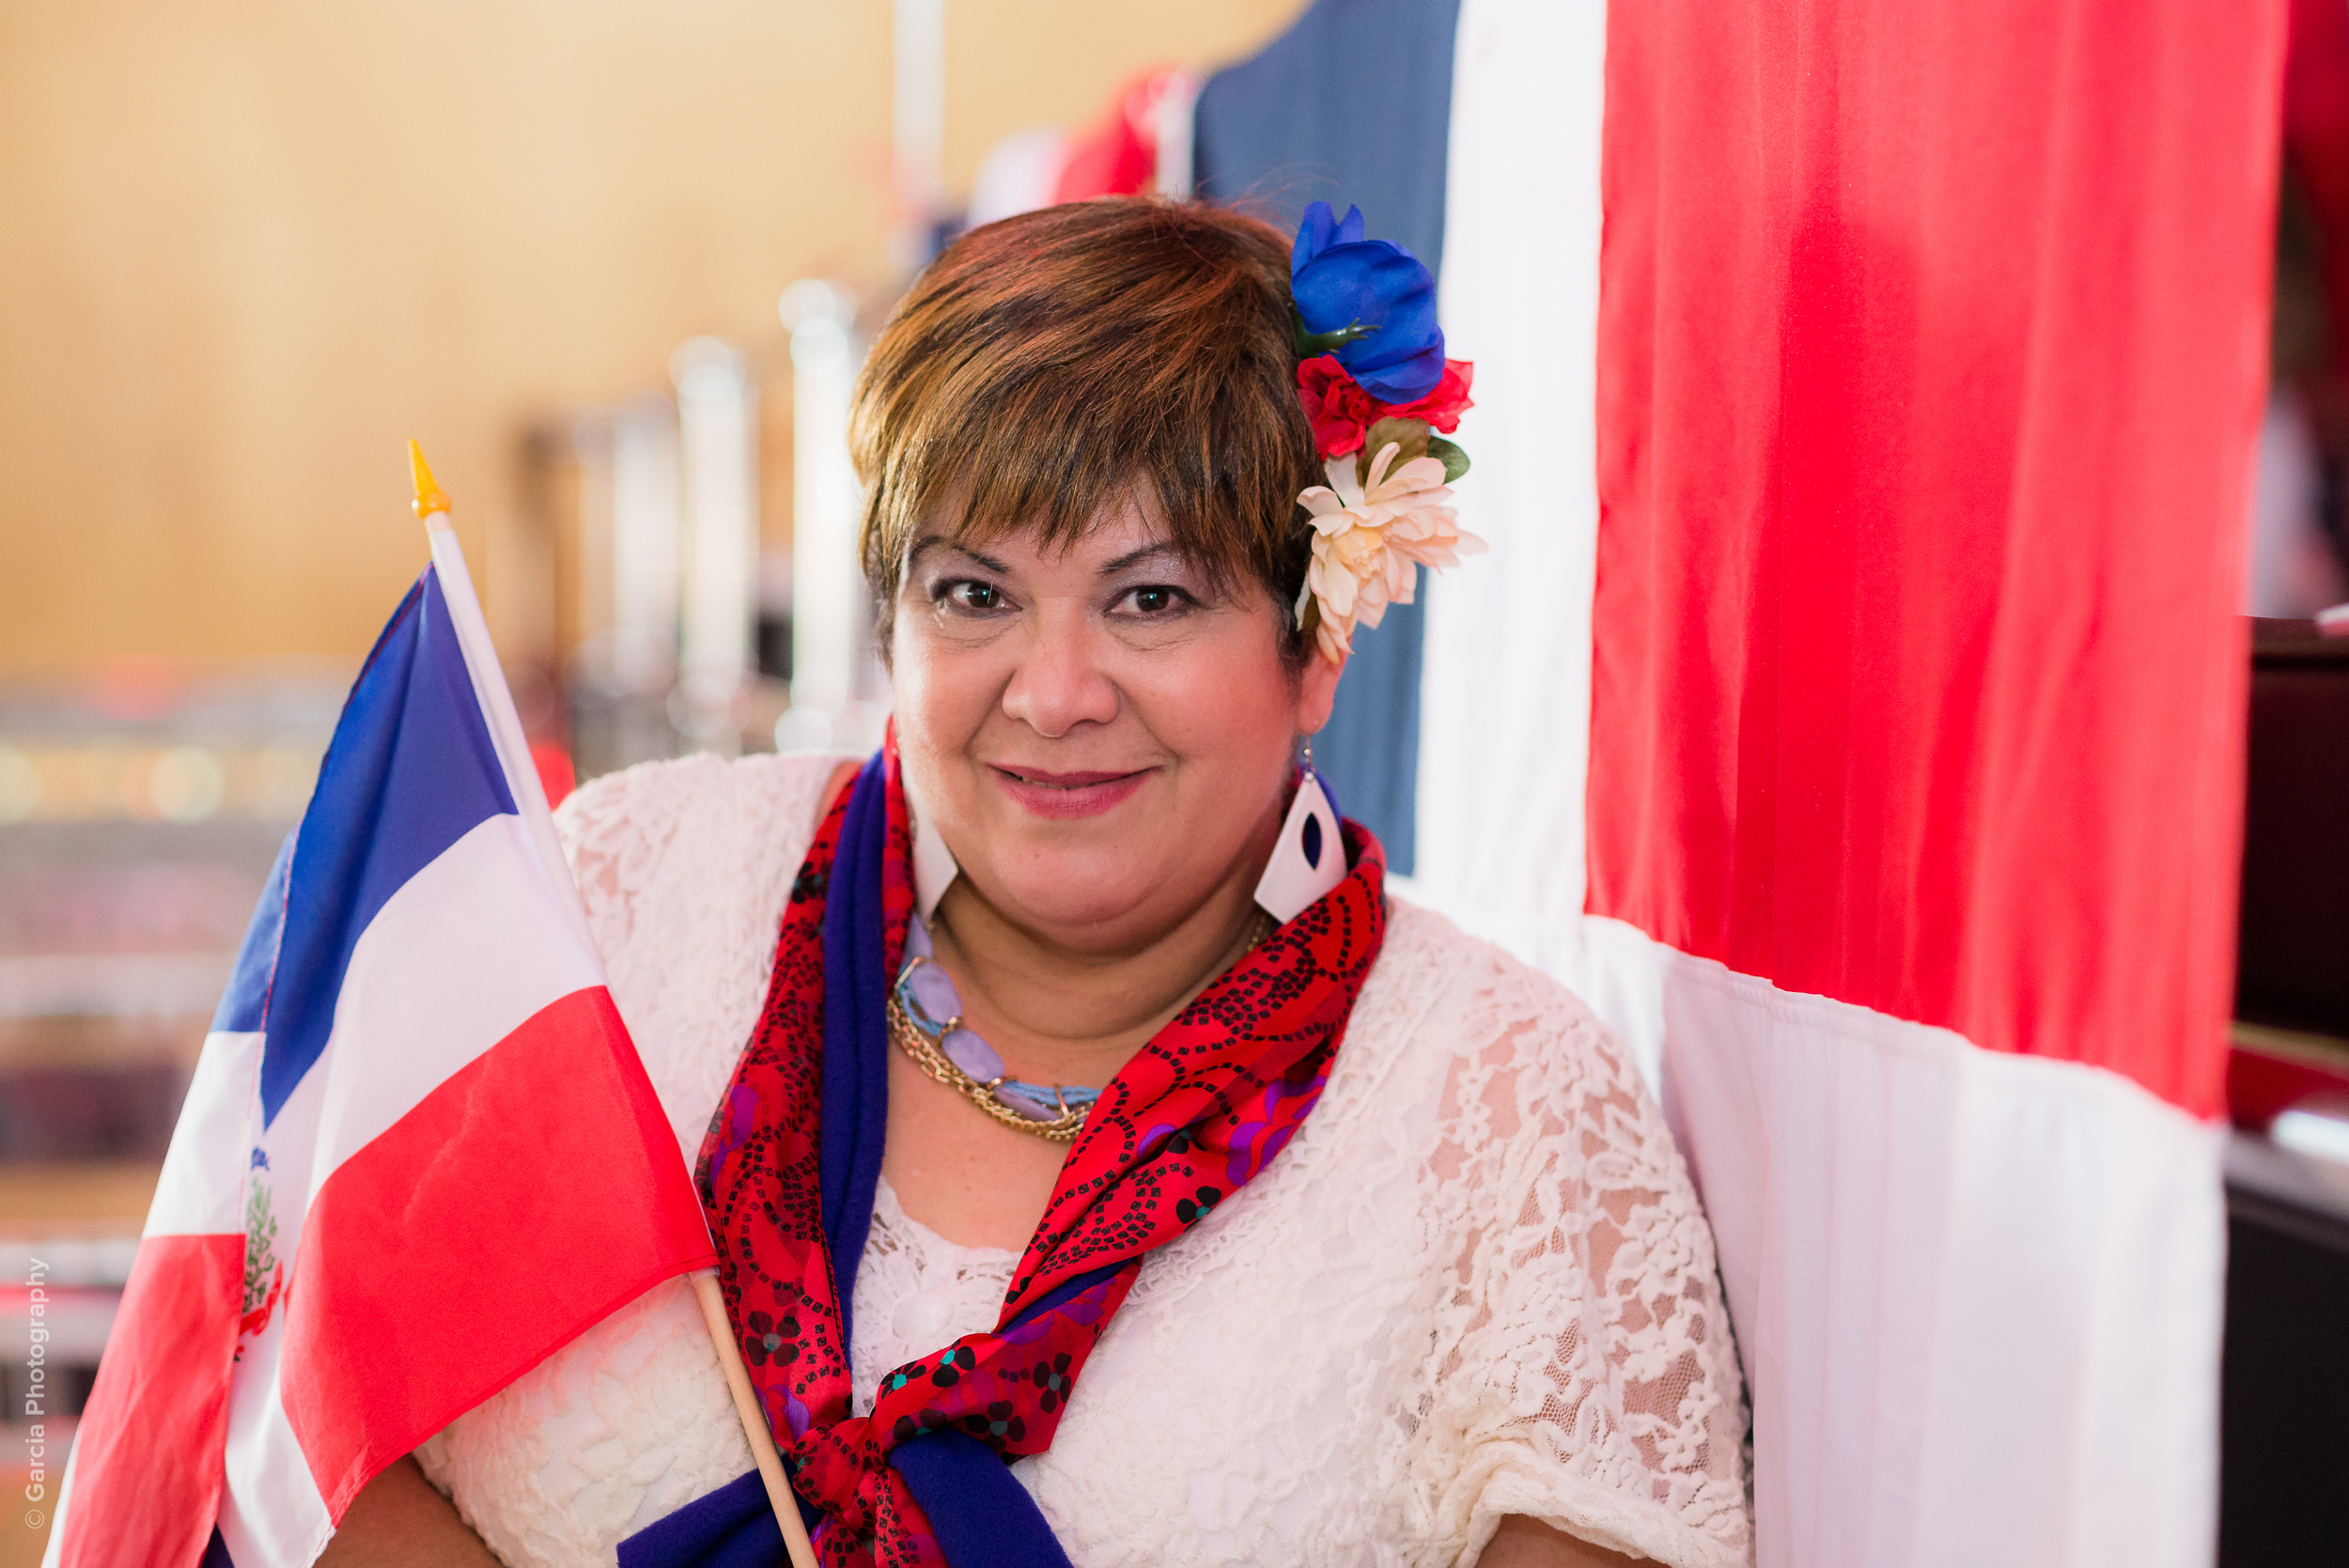 Dominican-Independance-Day-4299.jpg